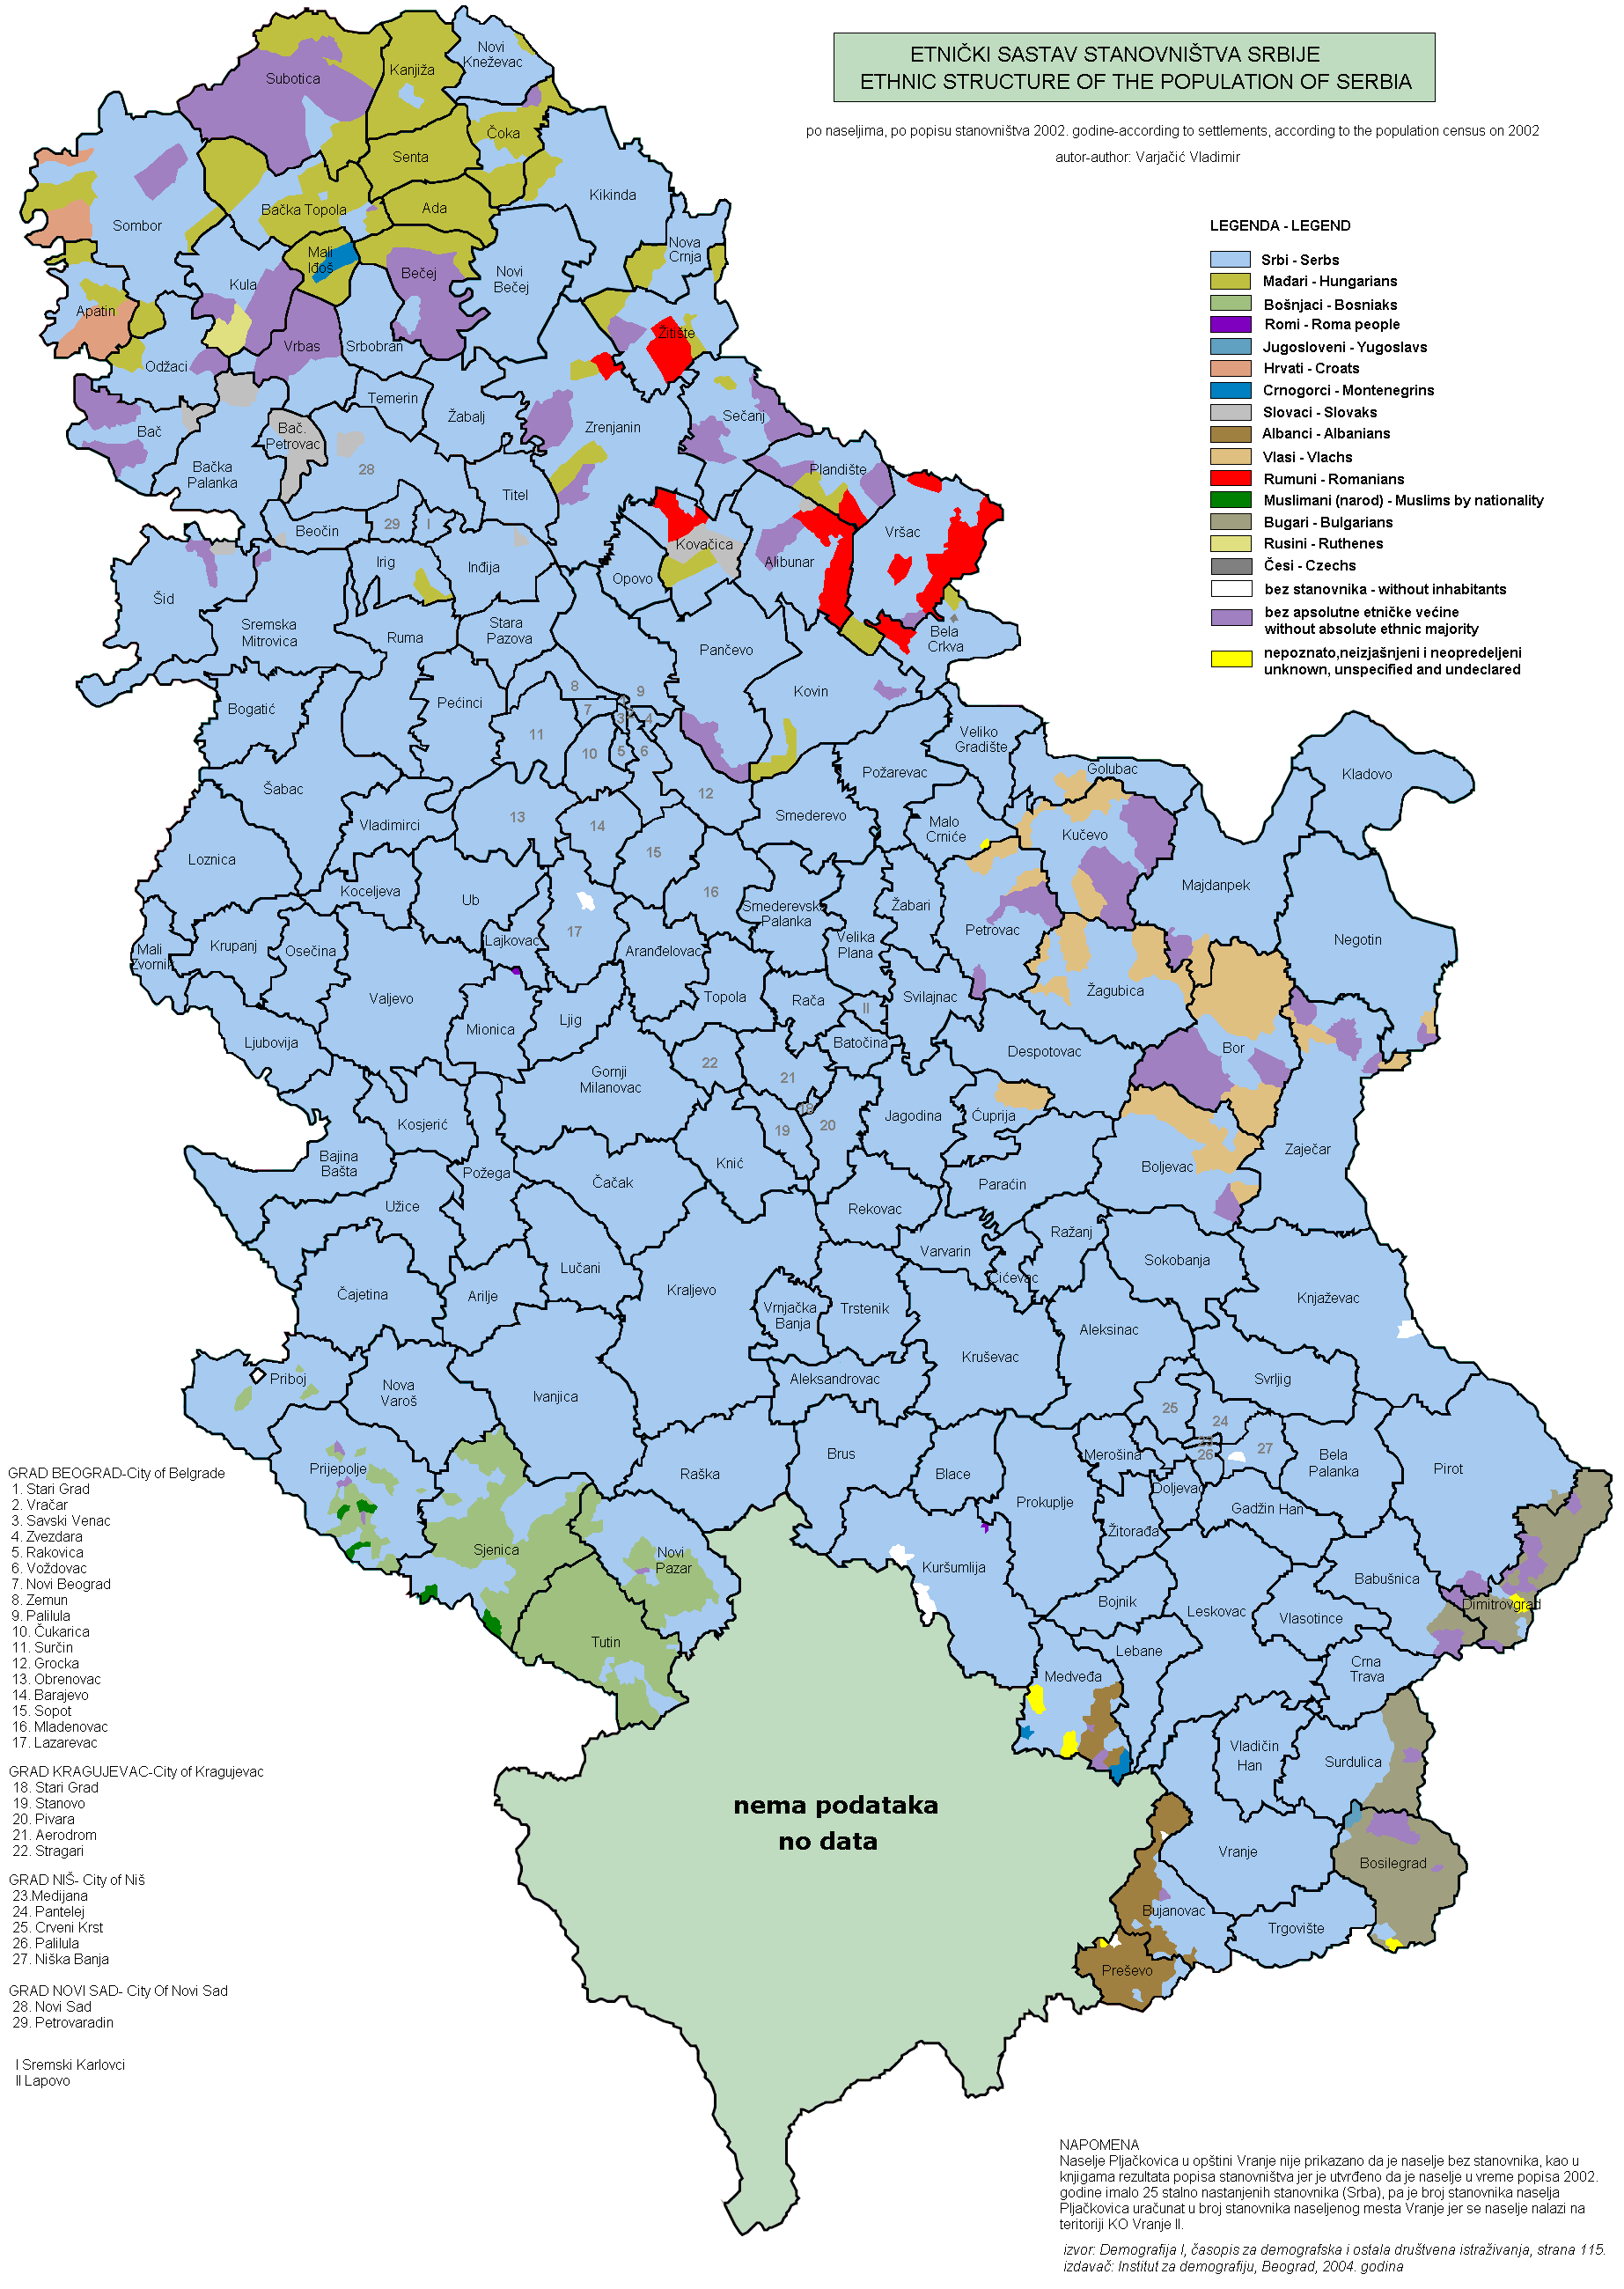 etnicka karta srbije 2011 File:Census 2002 Serbia, ethnic map (by municipalities).png  etnicka karta srbije 2011